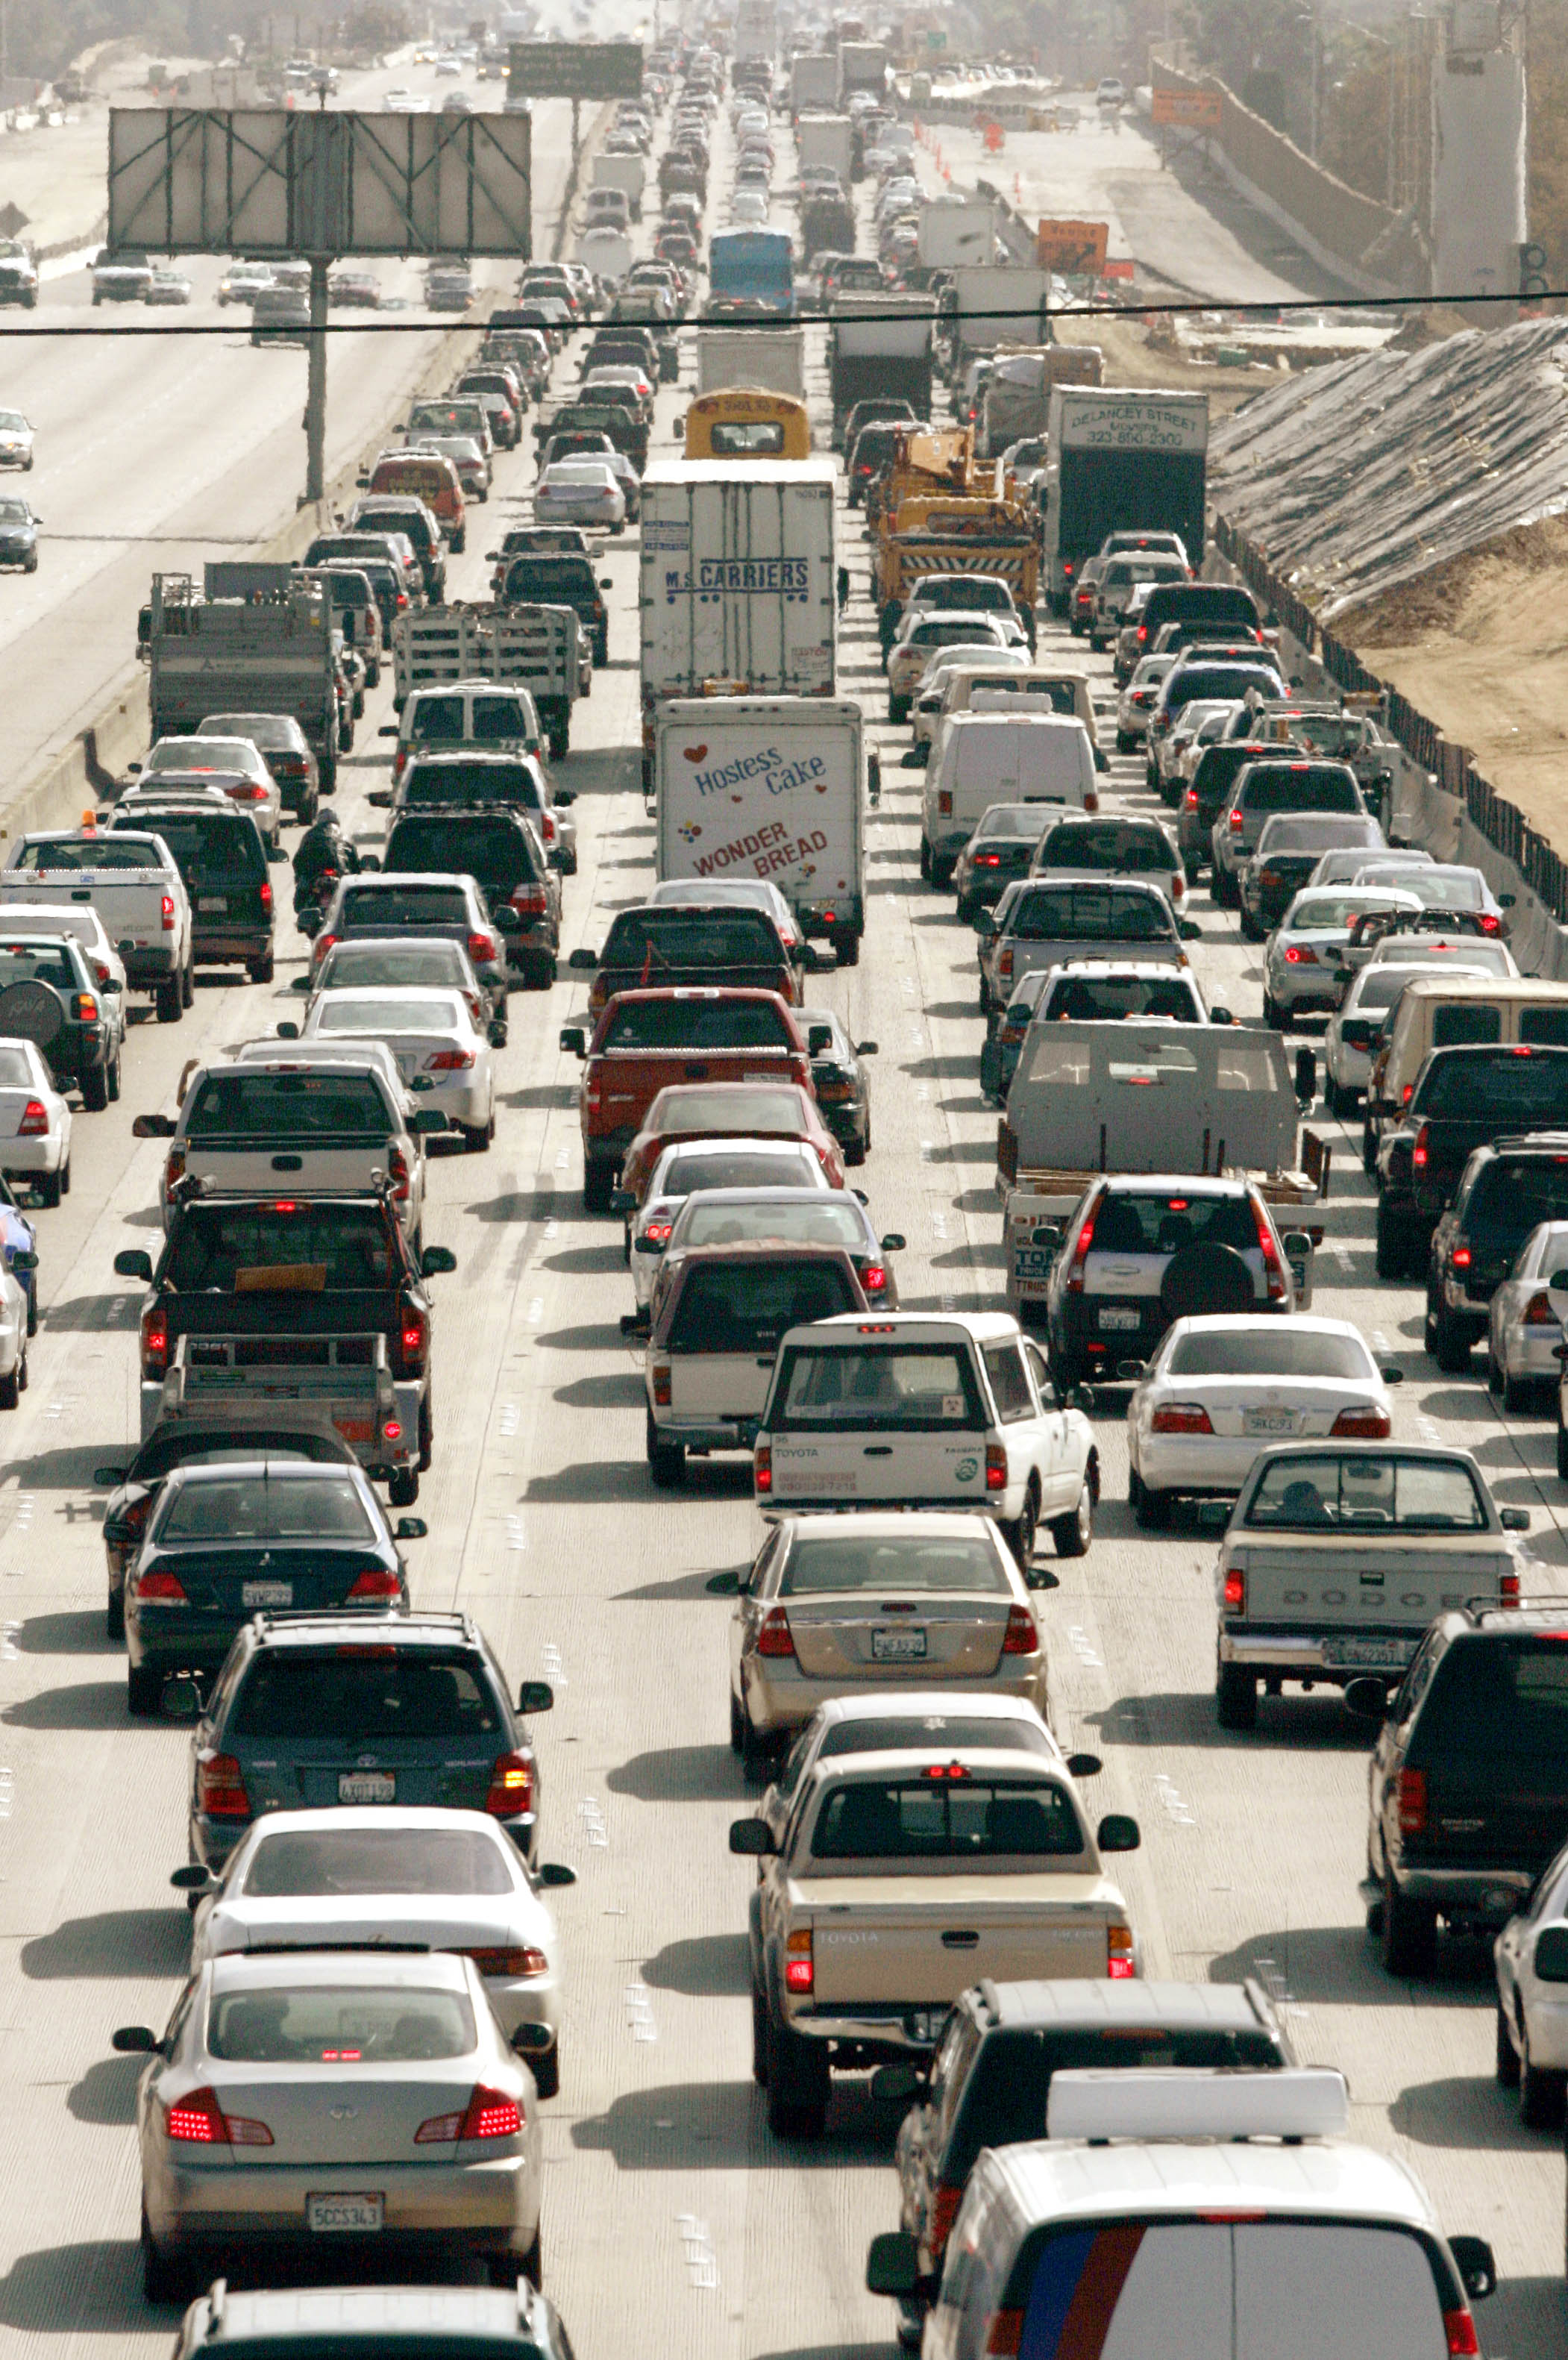 Trump administration to revoke California's power to set stricter auto emissions standards - The Washington Post